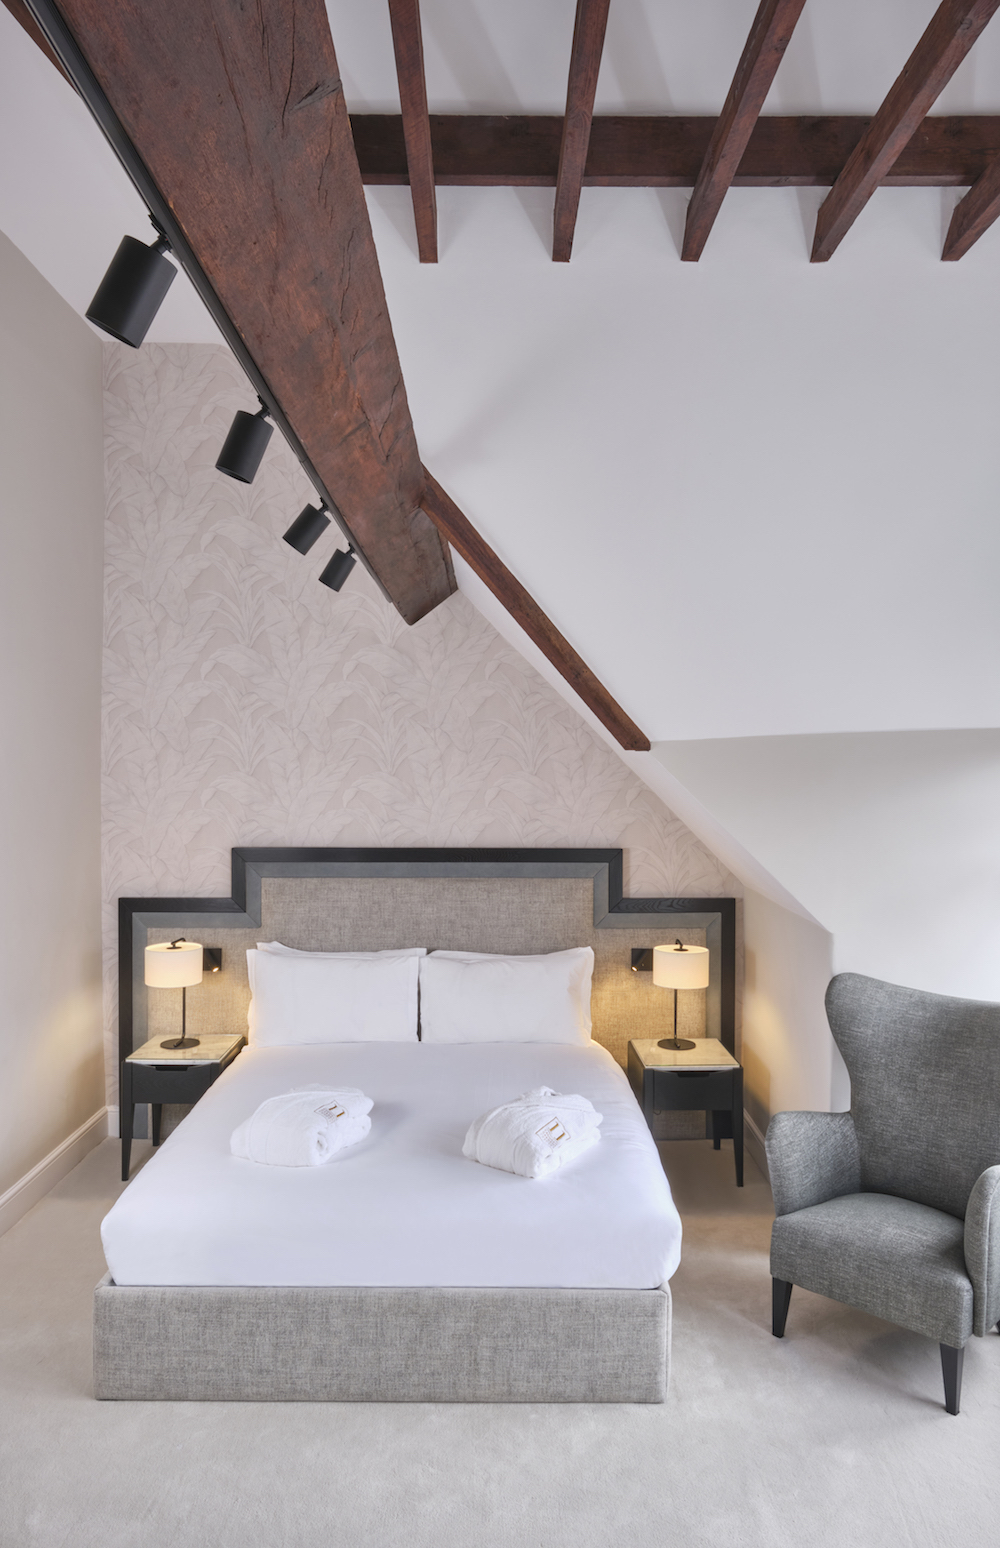 image of double bed in high beiling with wooden beams